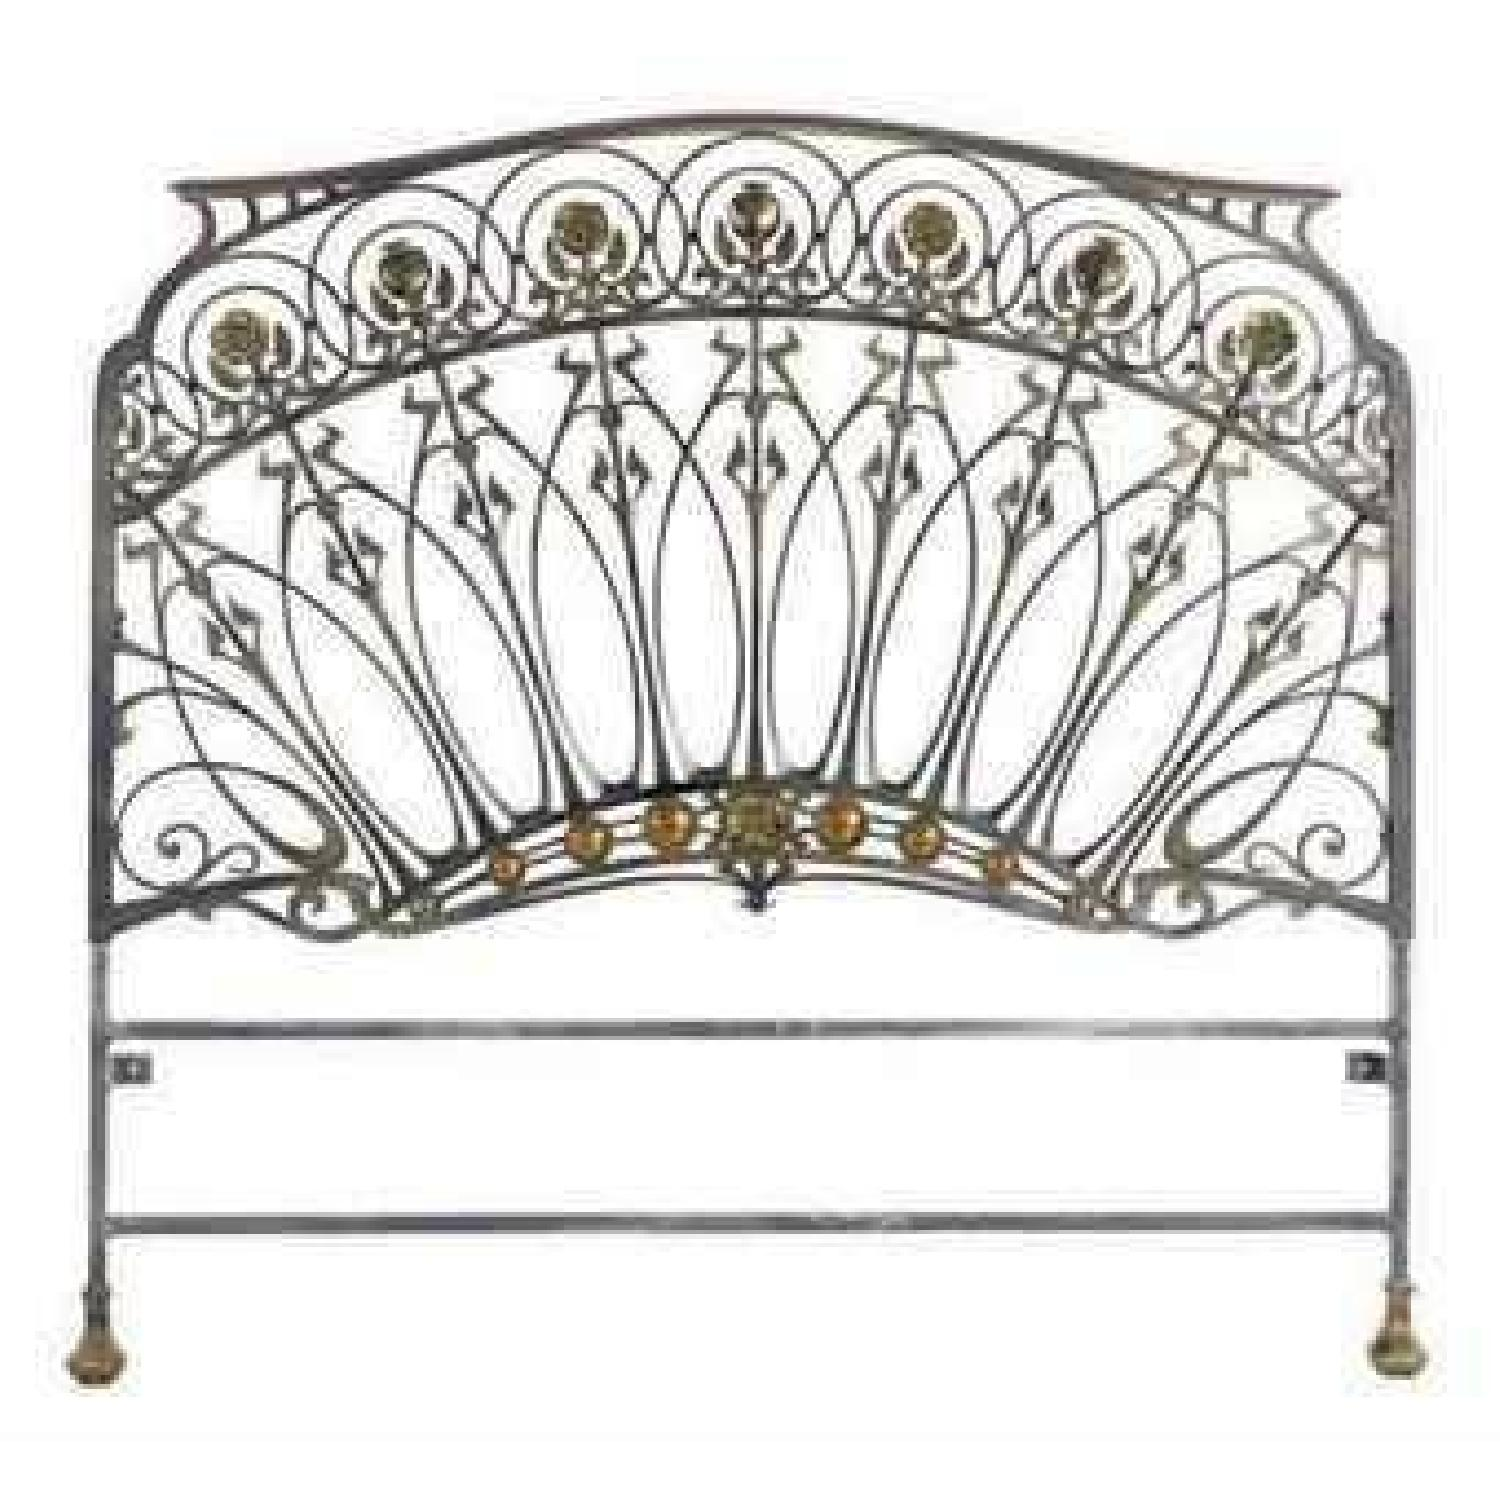 Early 20th-Century French Art Nouveau Wrought Iron and Gilt Bronze Headboard - image-0